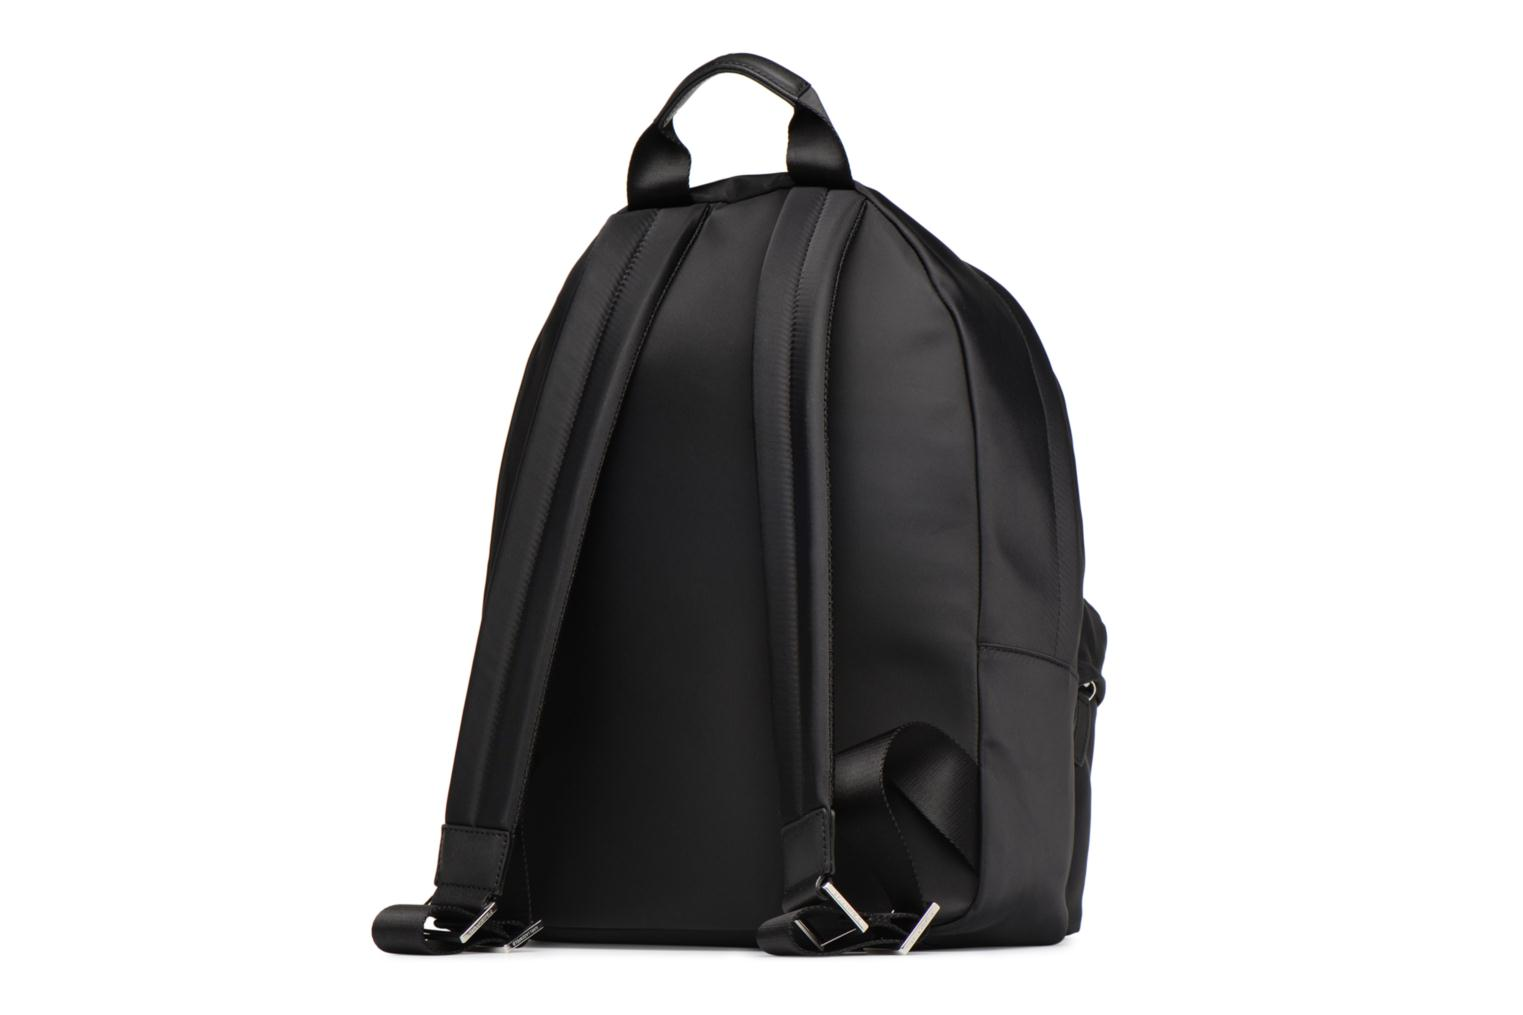 Black NYLON IKONIK LAGERFELD BACKPACK K KARL xZw6C08qO6